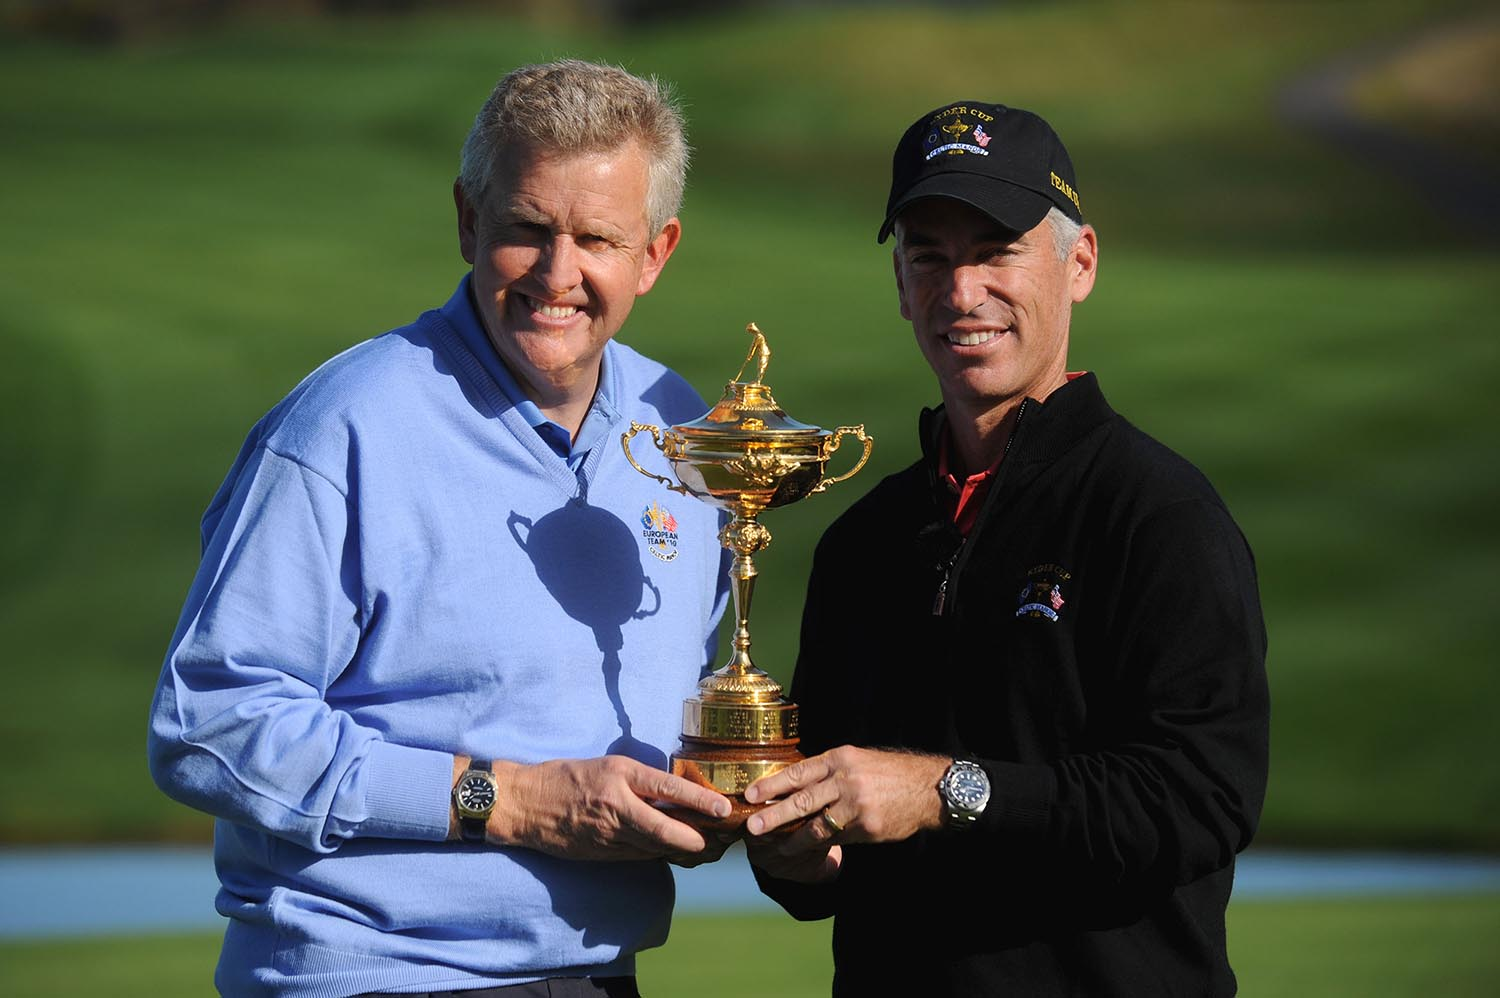 Colin Montgomerie and Corey Pavin with the Ryder Cup